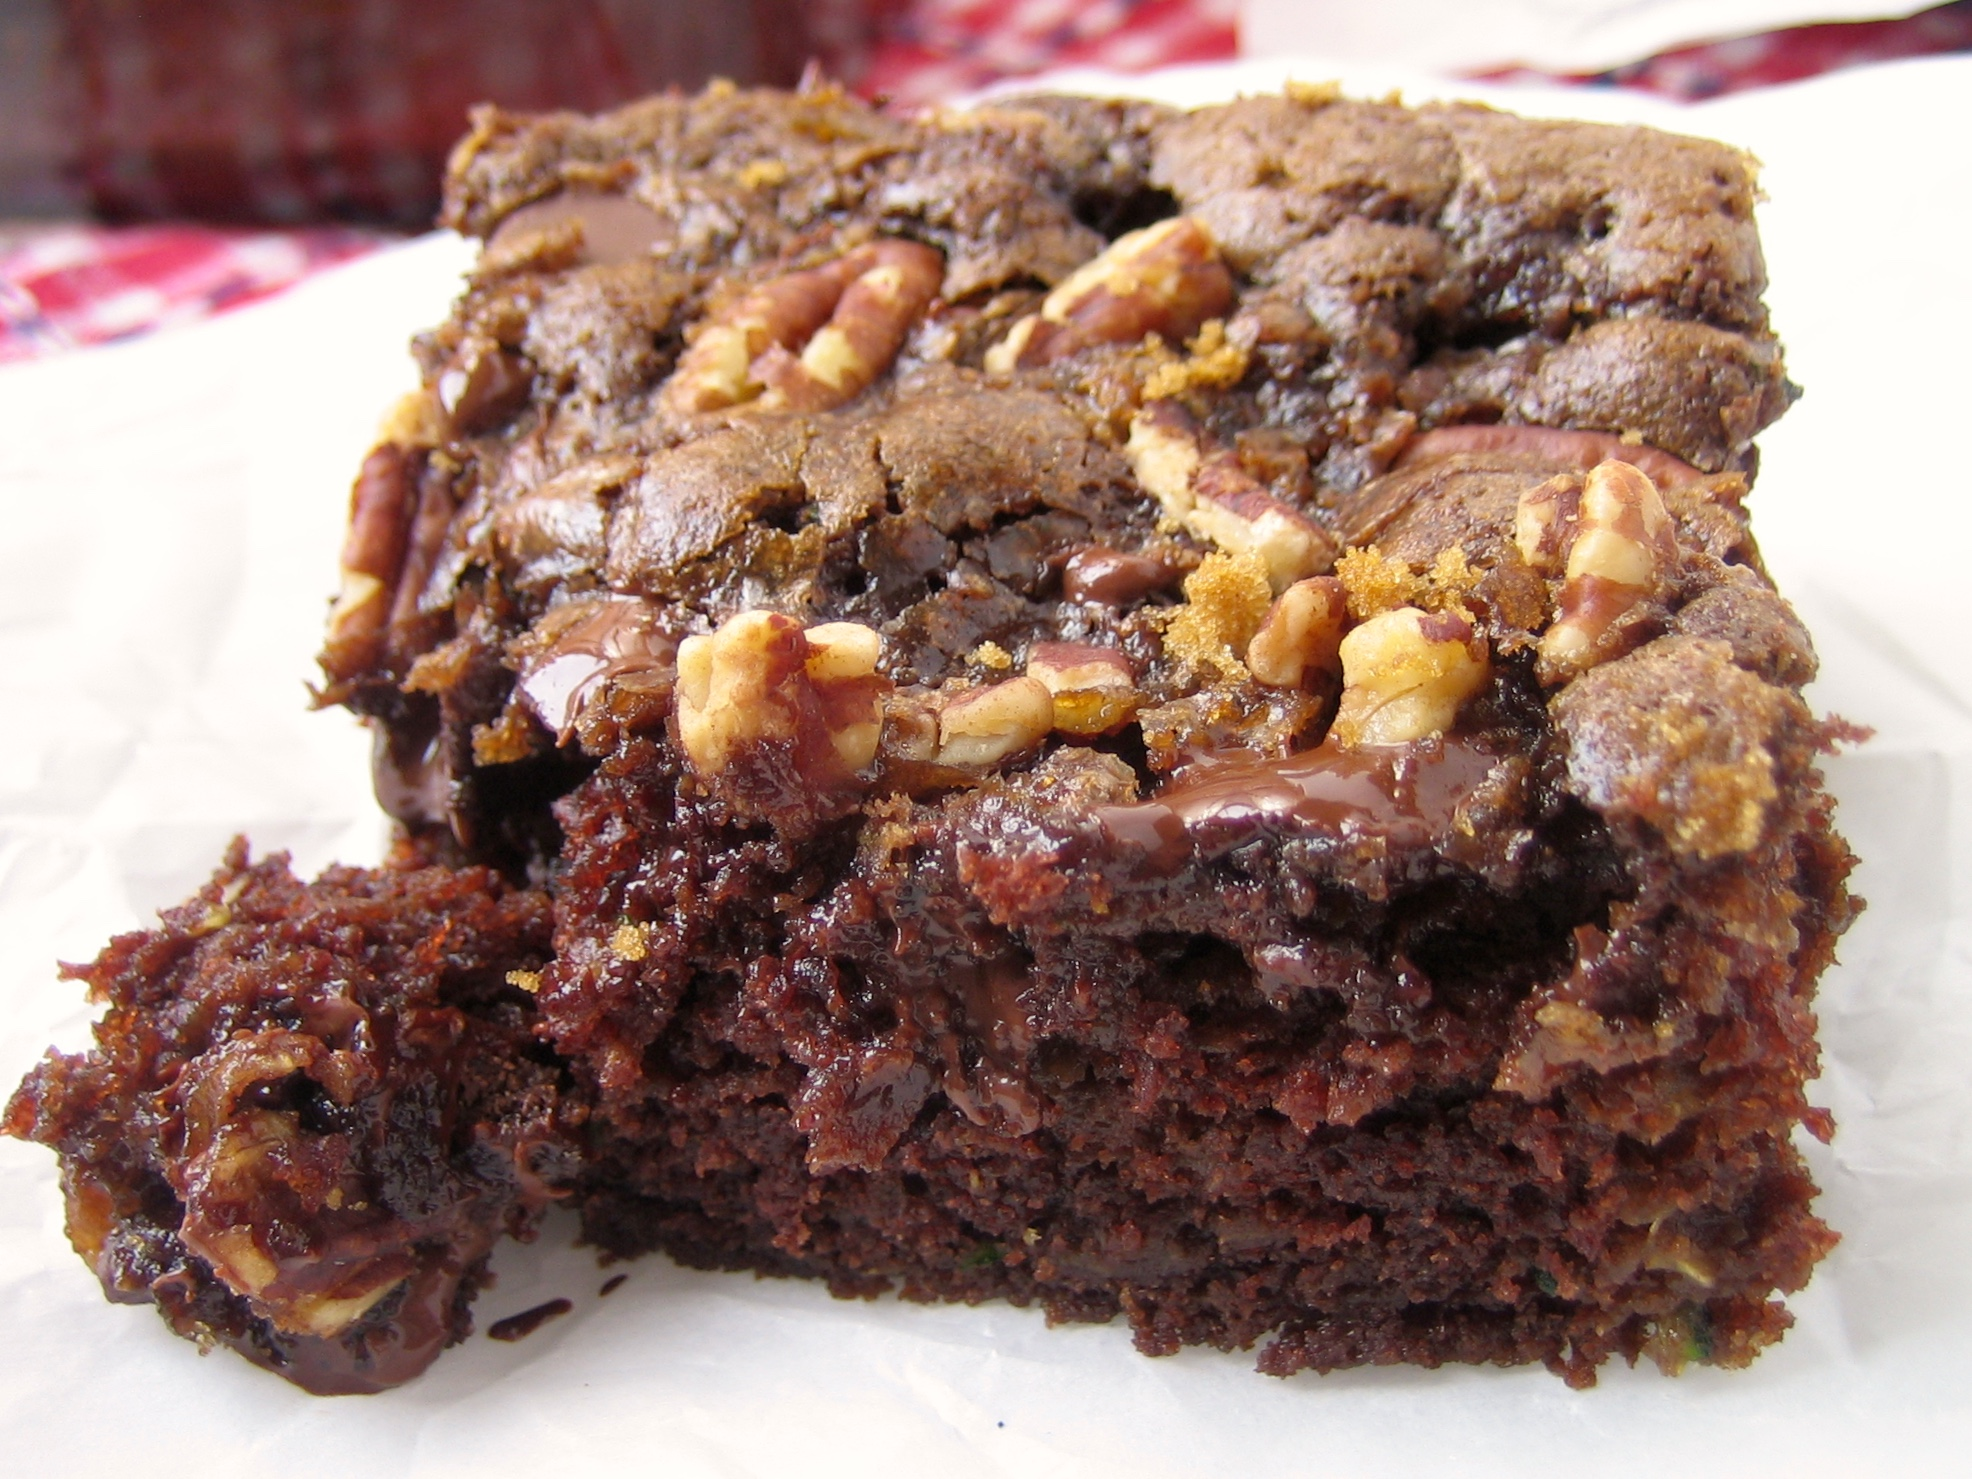 Chocolate Zucchini Cake with Brown Sugar Streusel | Laura's Cozy ...